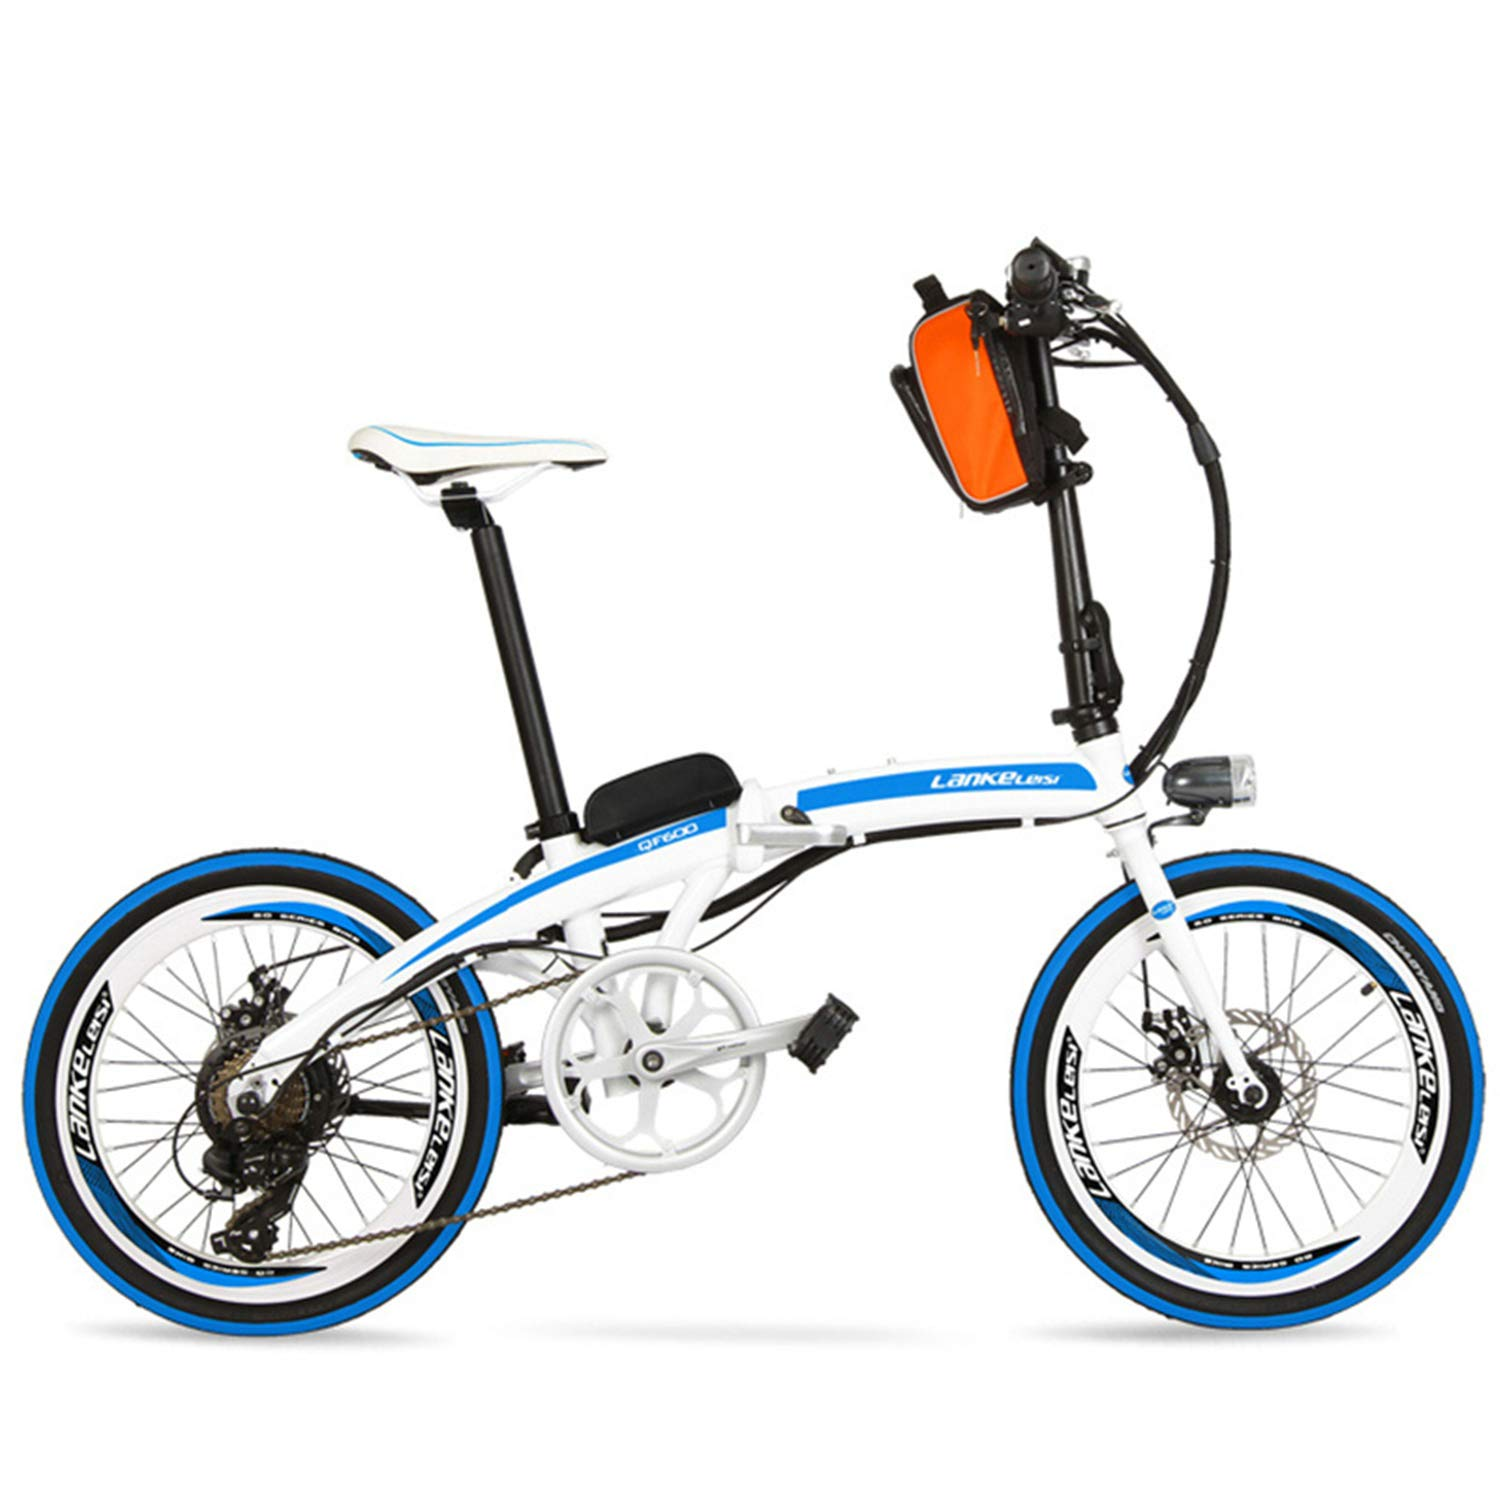 LANKELEISI QF600 Elite Big Powerful Portable 20 Pulgadas Bicicleta ...